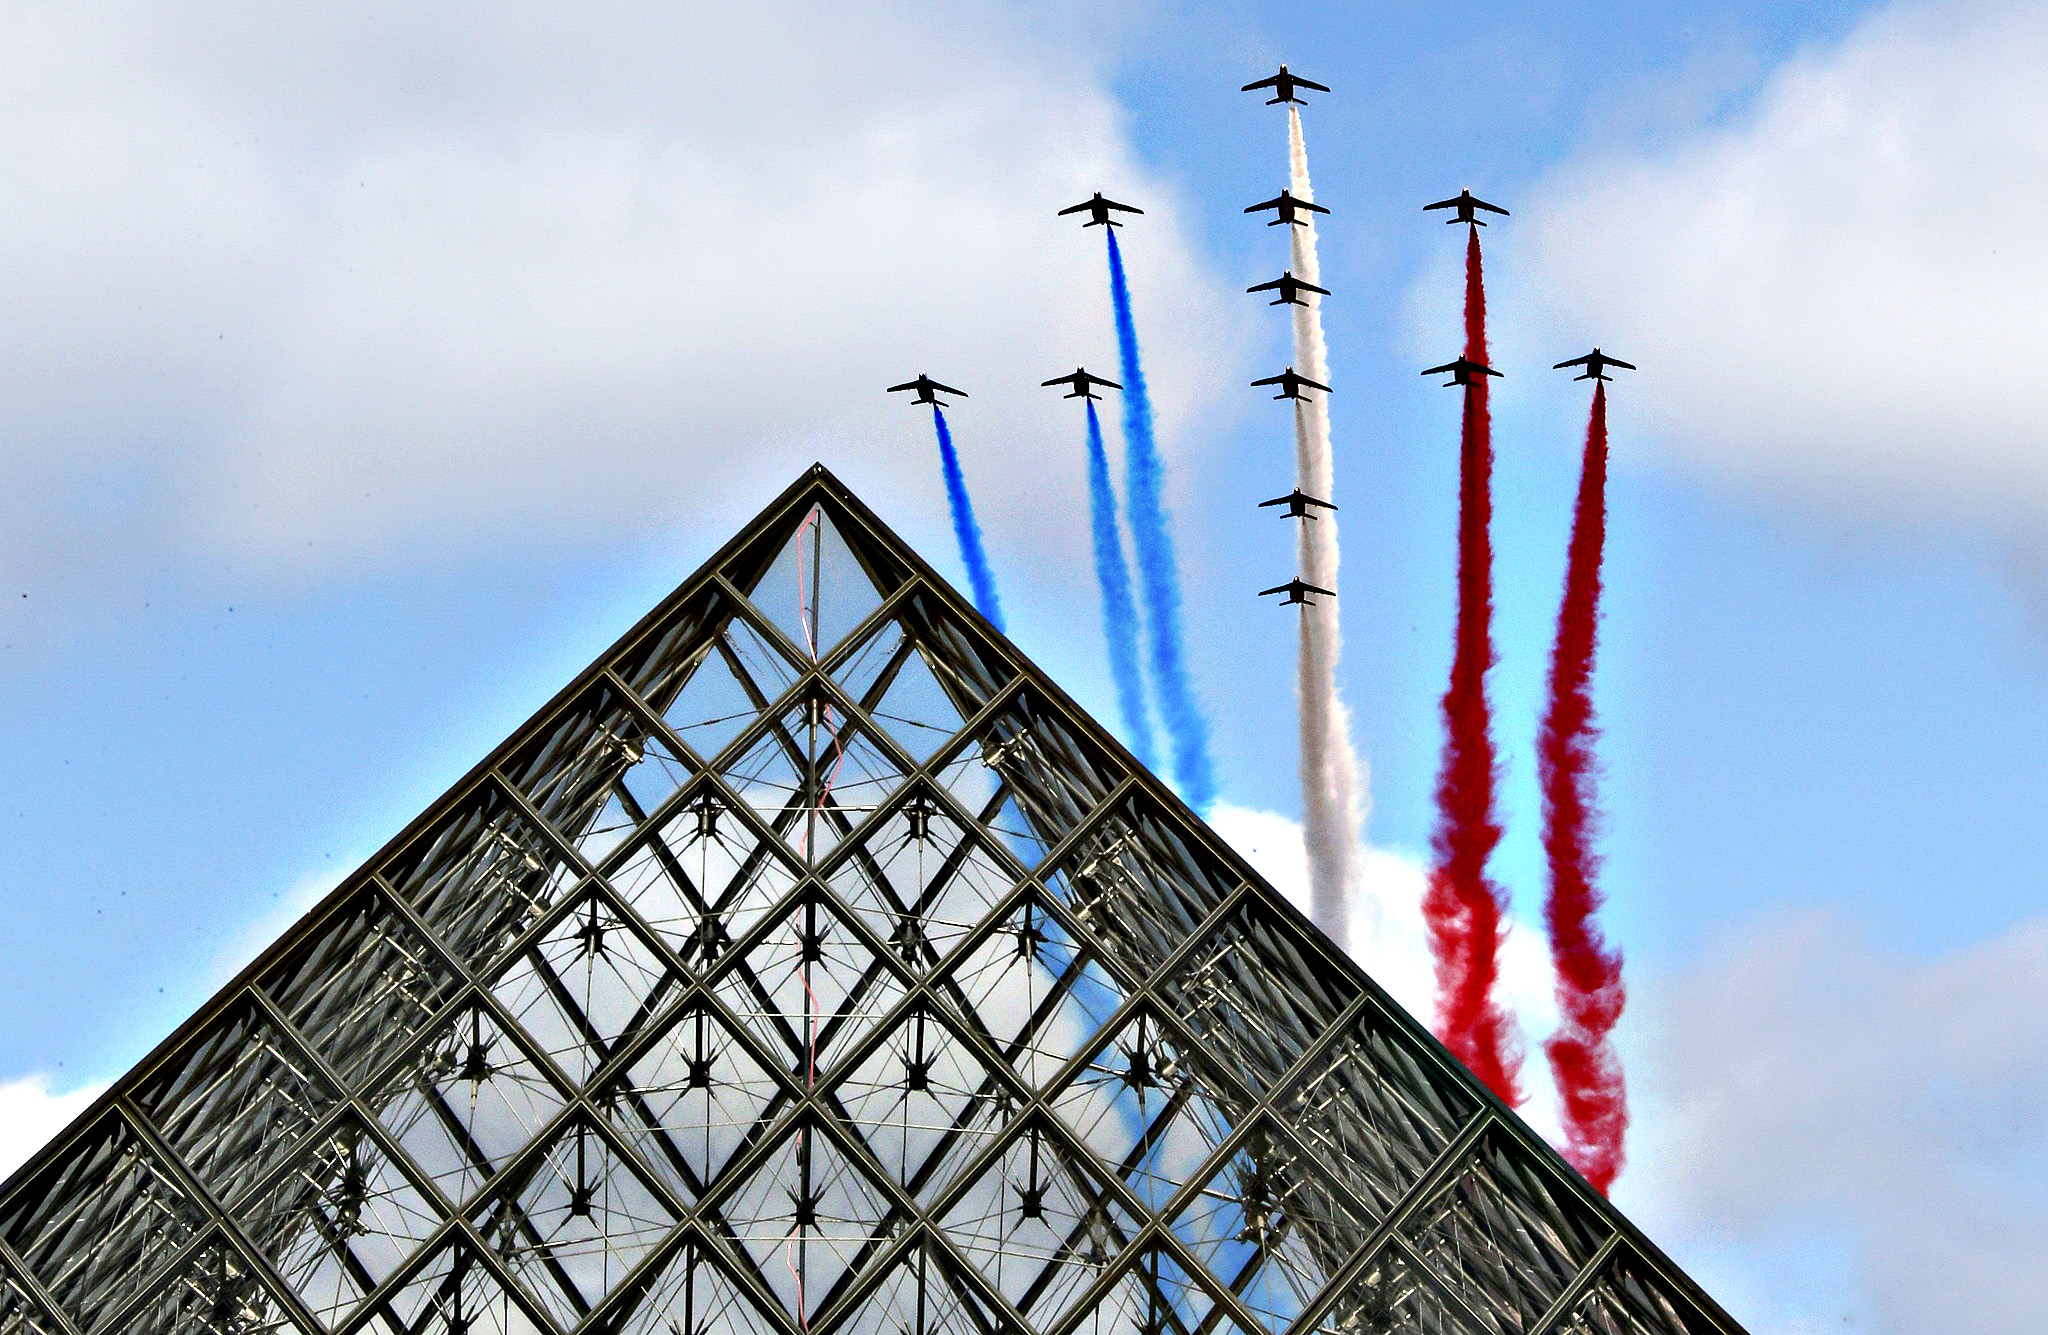 Alphajets from the French Air Force Patrouille de France fly over the Pyramid of the Louvre Museum during the traditional Bastille day military parade in Paris...Alphajets from the French Air Force Patrouille de France in the formation of a Croix de Lorraine cross and releasing trails of red, white and blue smoke, colors of French national flag, fly over the Pyramid of the Louvre Museum during the traditional Bastille day military parade in Paris, France, July 14, 2015